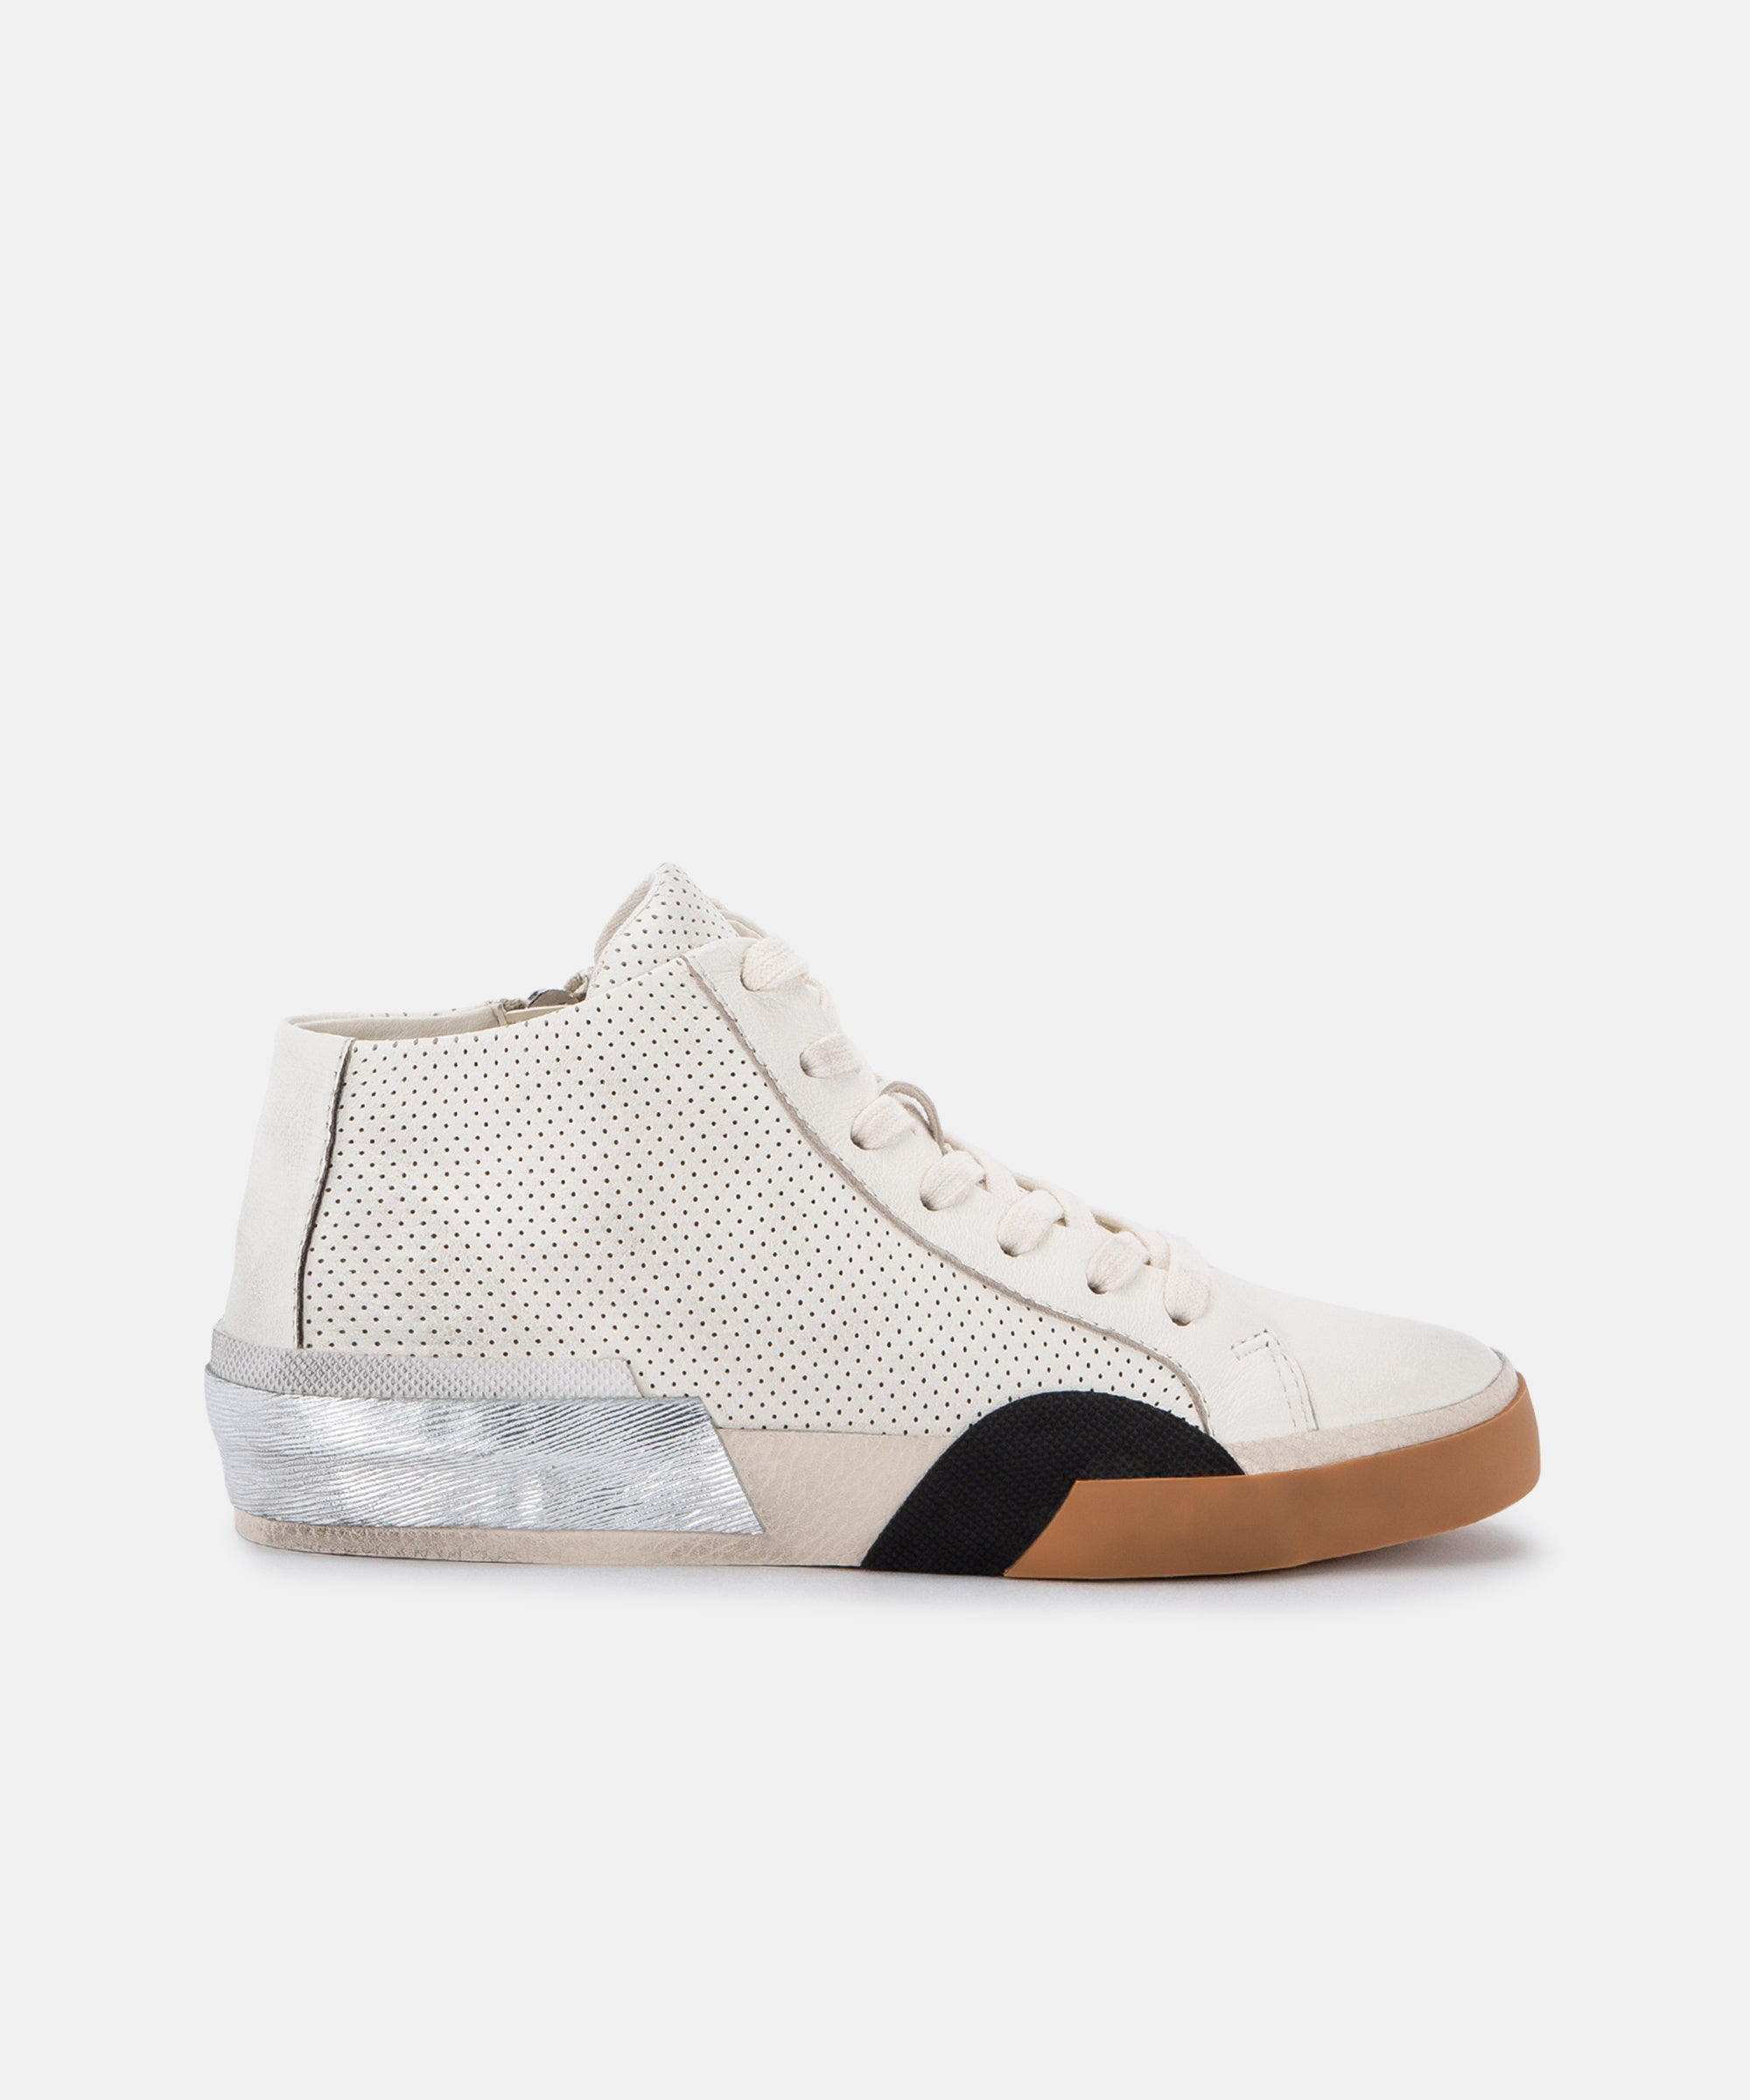 ZOEL SNEAKERS IN WHITE PERFORATED LEATHER